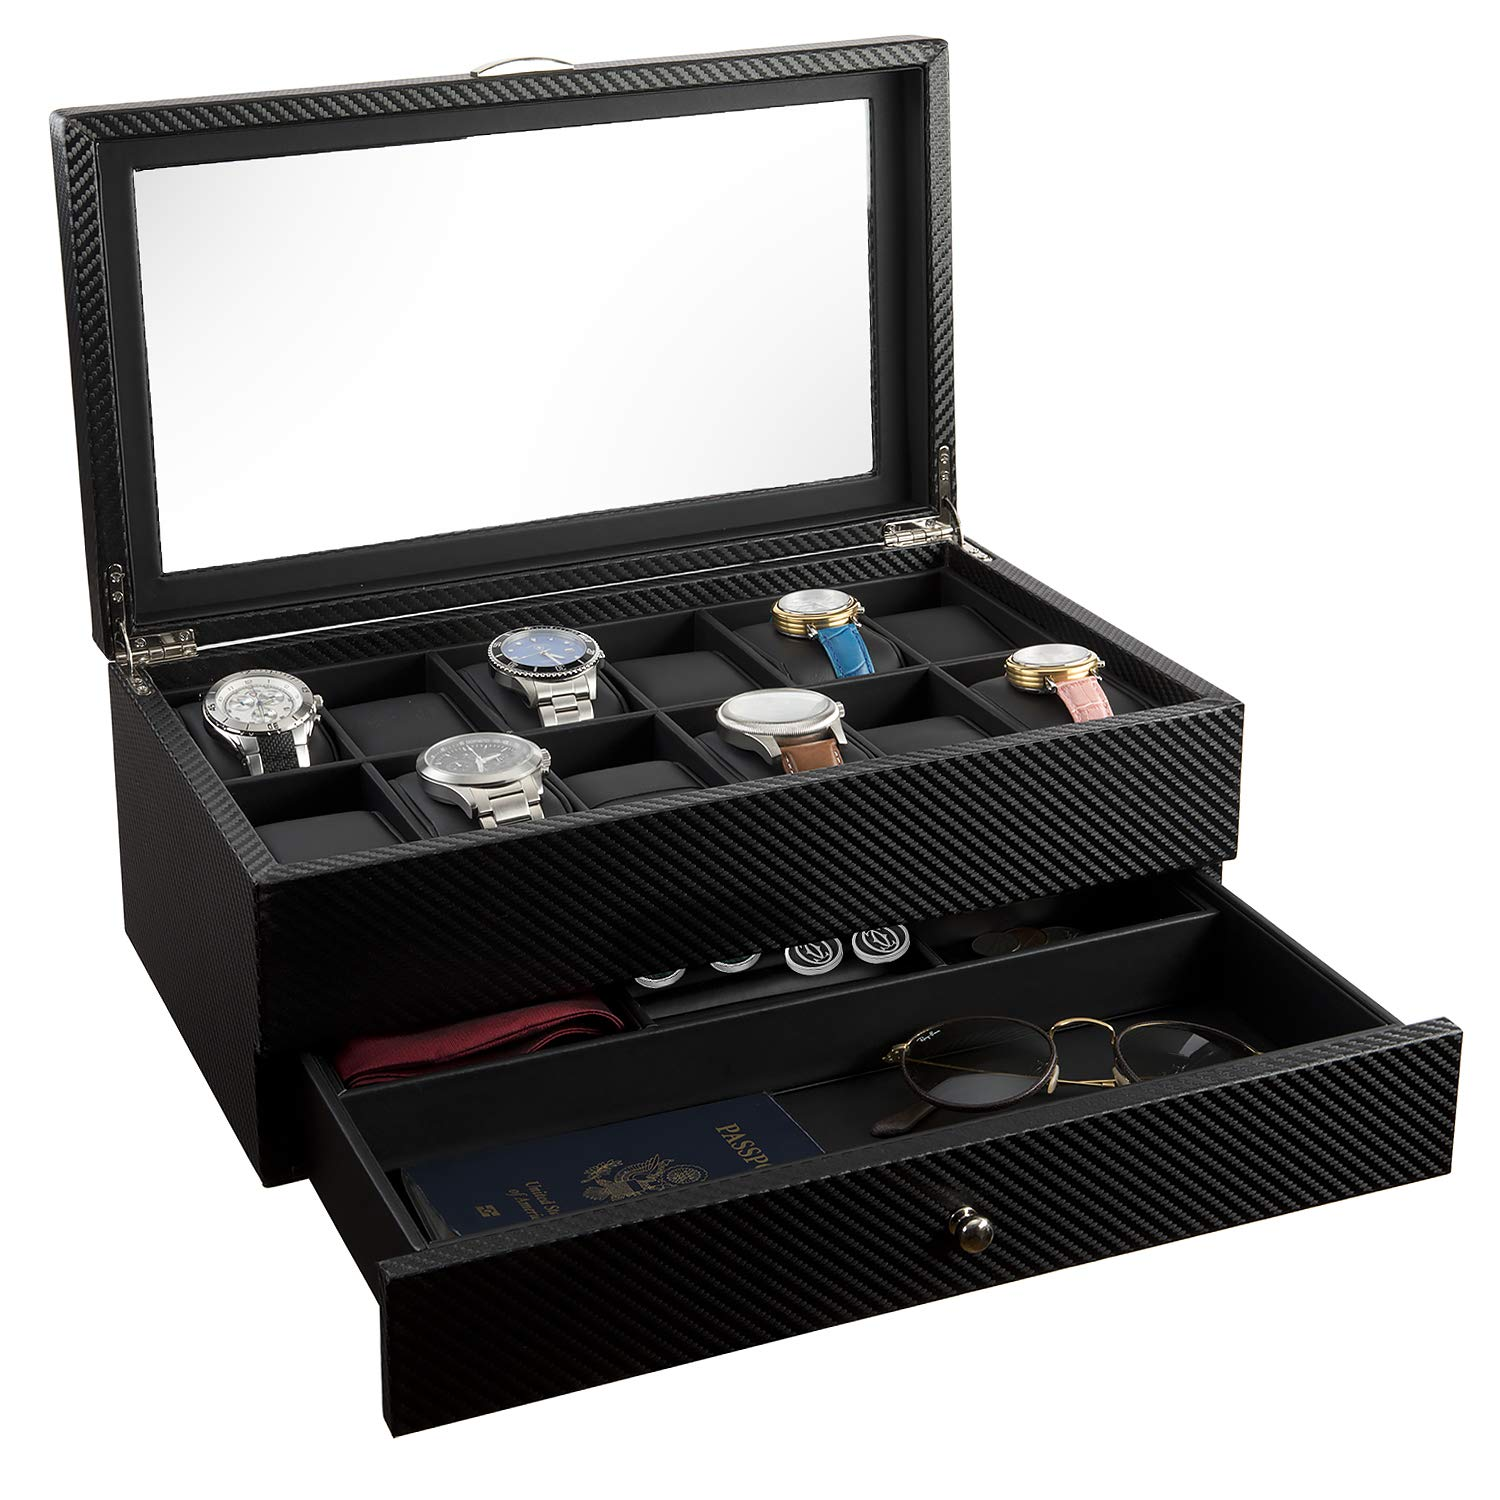 Watch Box- Display Case & Organizer For Men| First-Class Jewelry Watch Holder| 12 Watch Slots & Valet Drawer for Sunglasses, Rings, Phone| Sleek Black Color, Glass Top, Carbon Fiber, & Faux Leather